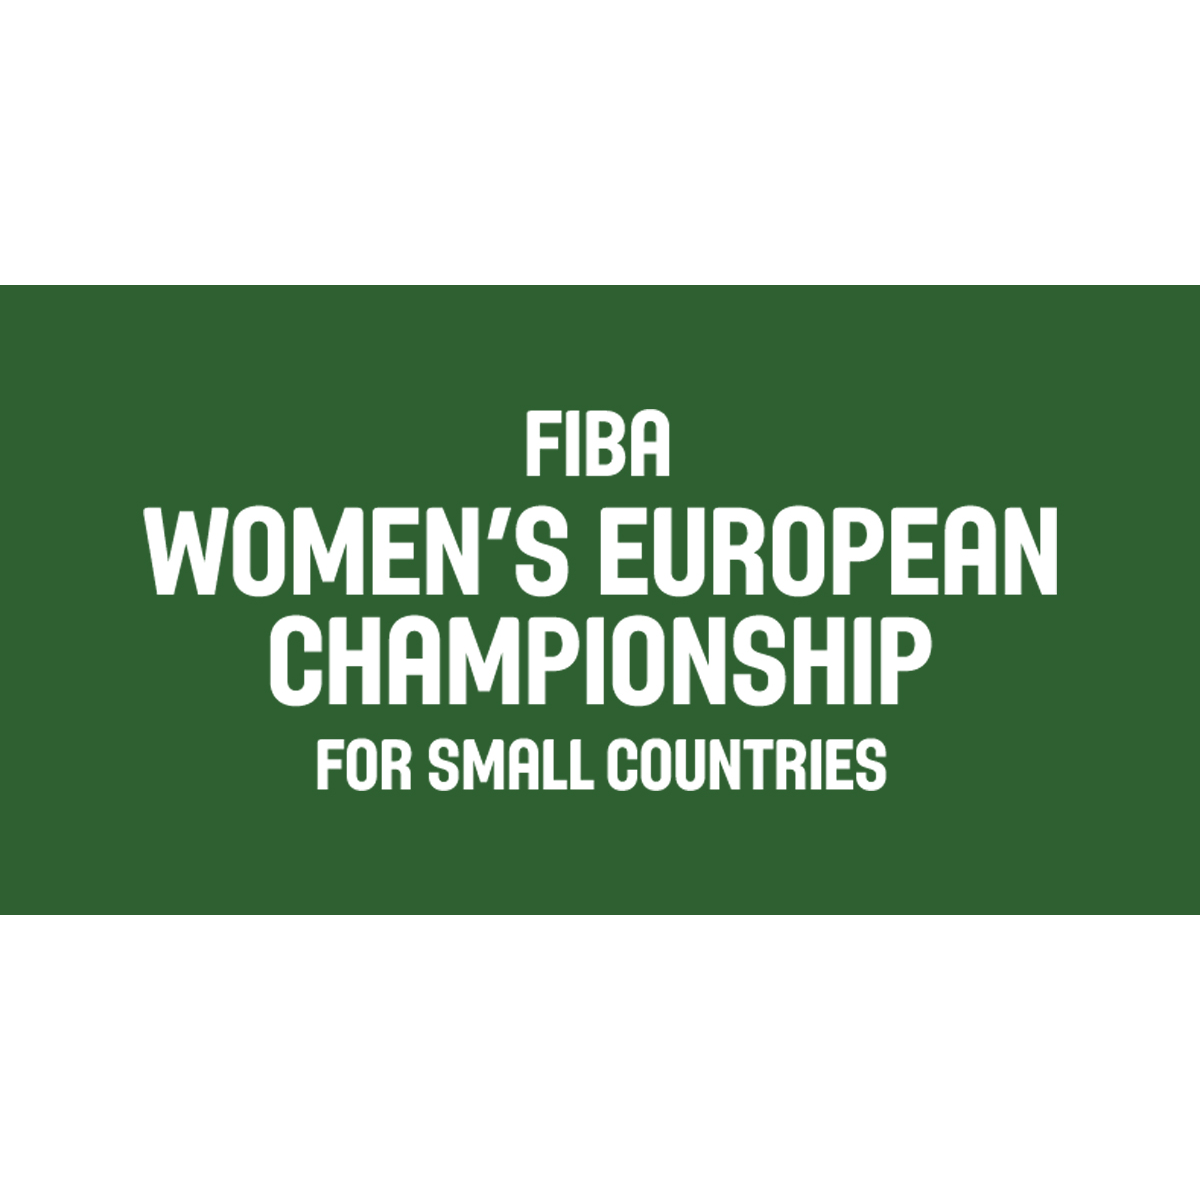 2021 FIBA Basketball Women's European Championship for Small Countries